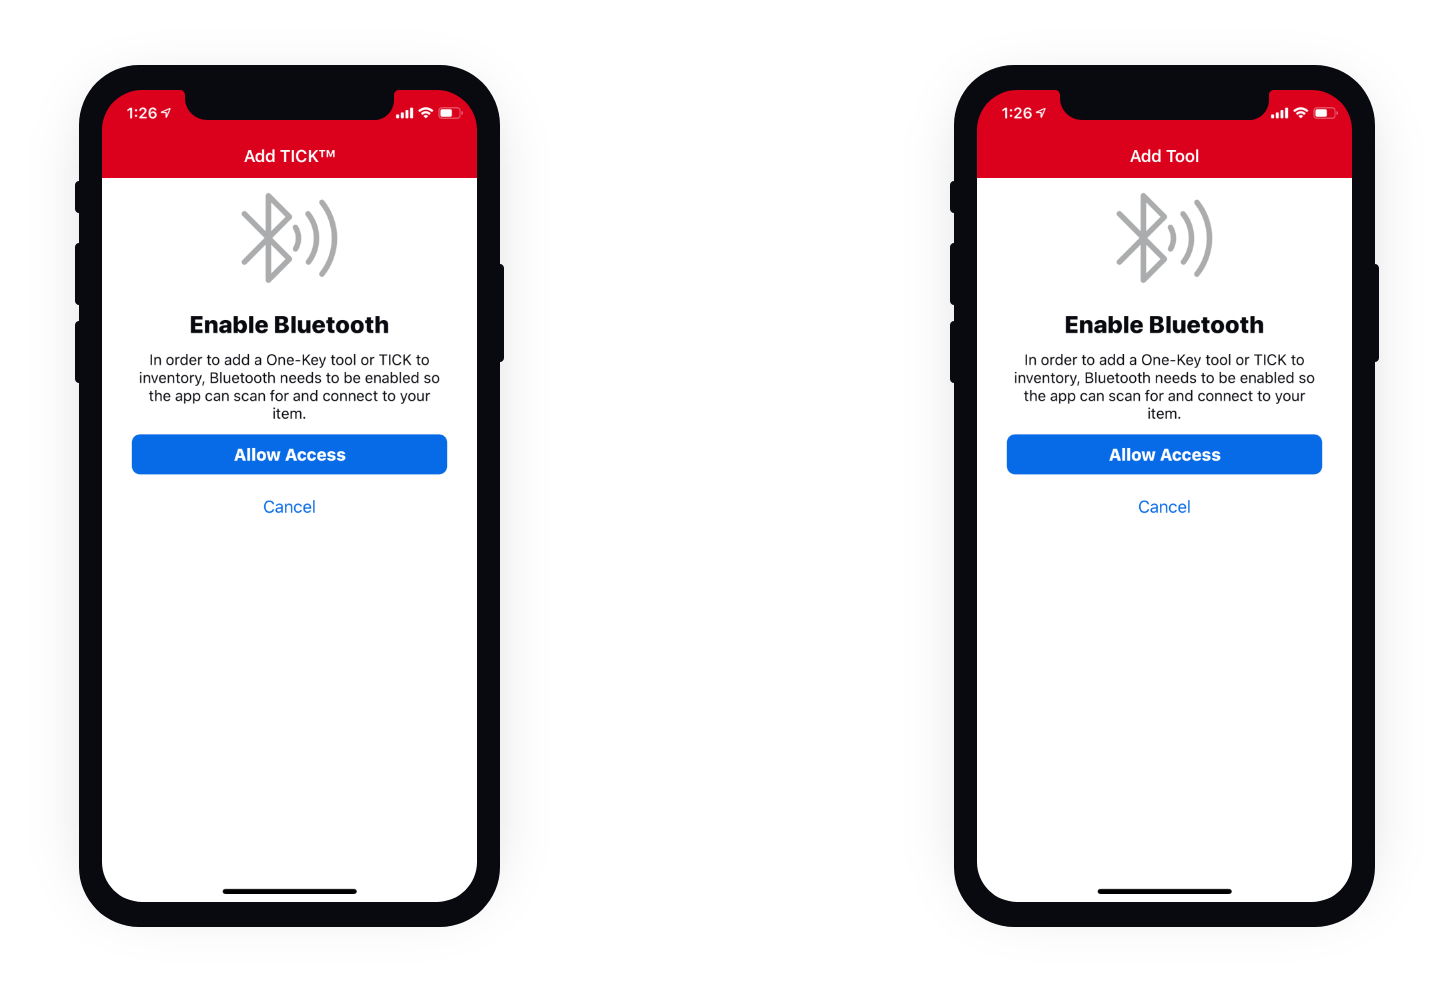 Educational screens in bluetooth tracking app show steps needed for adding tools to inventory